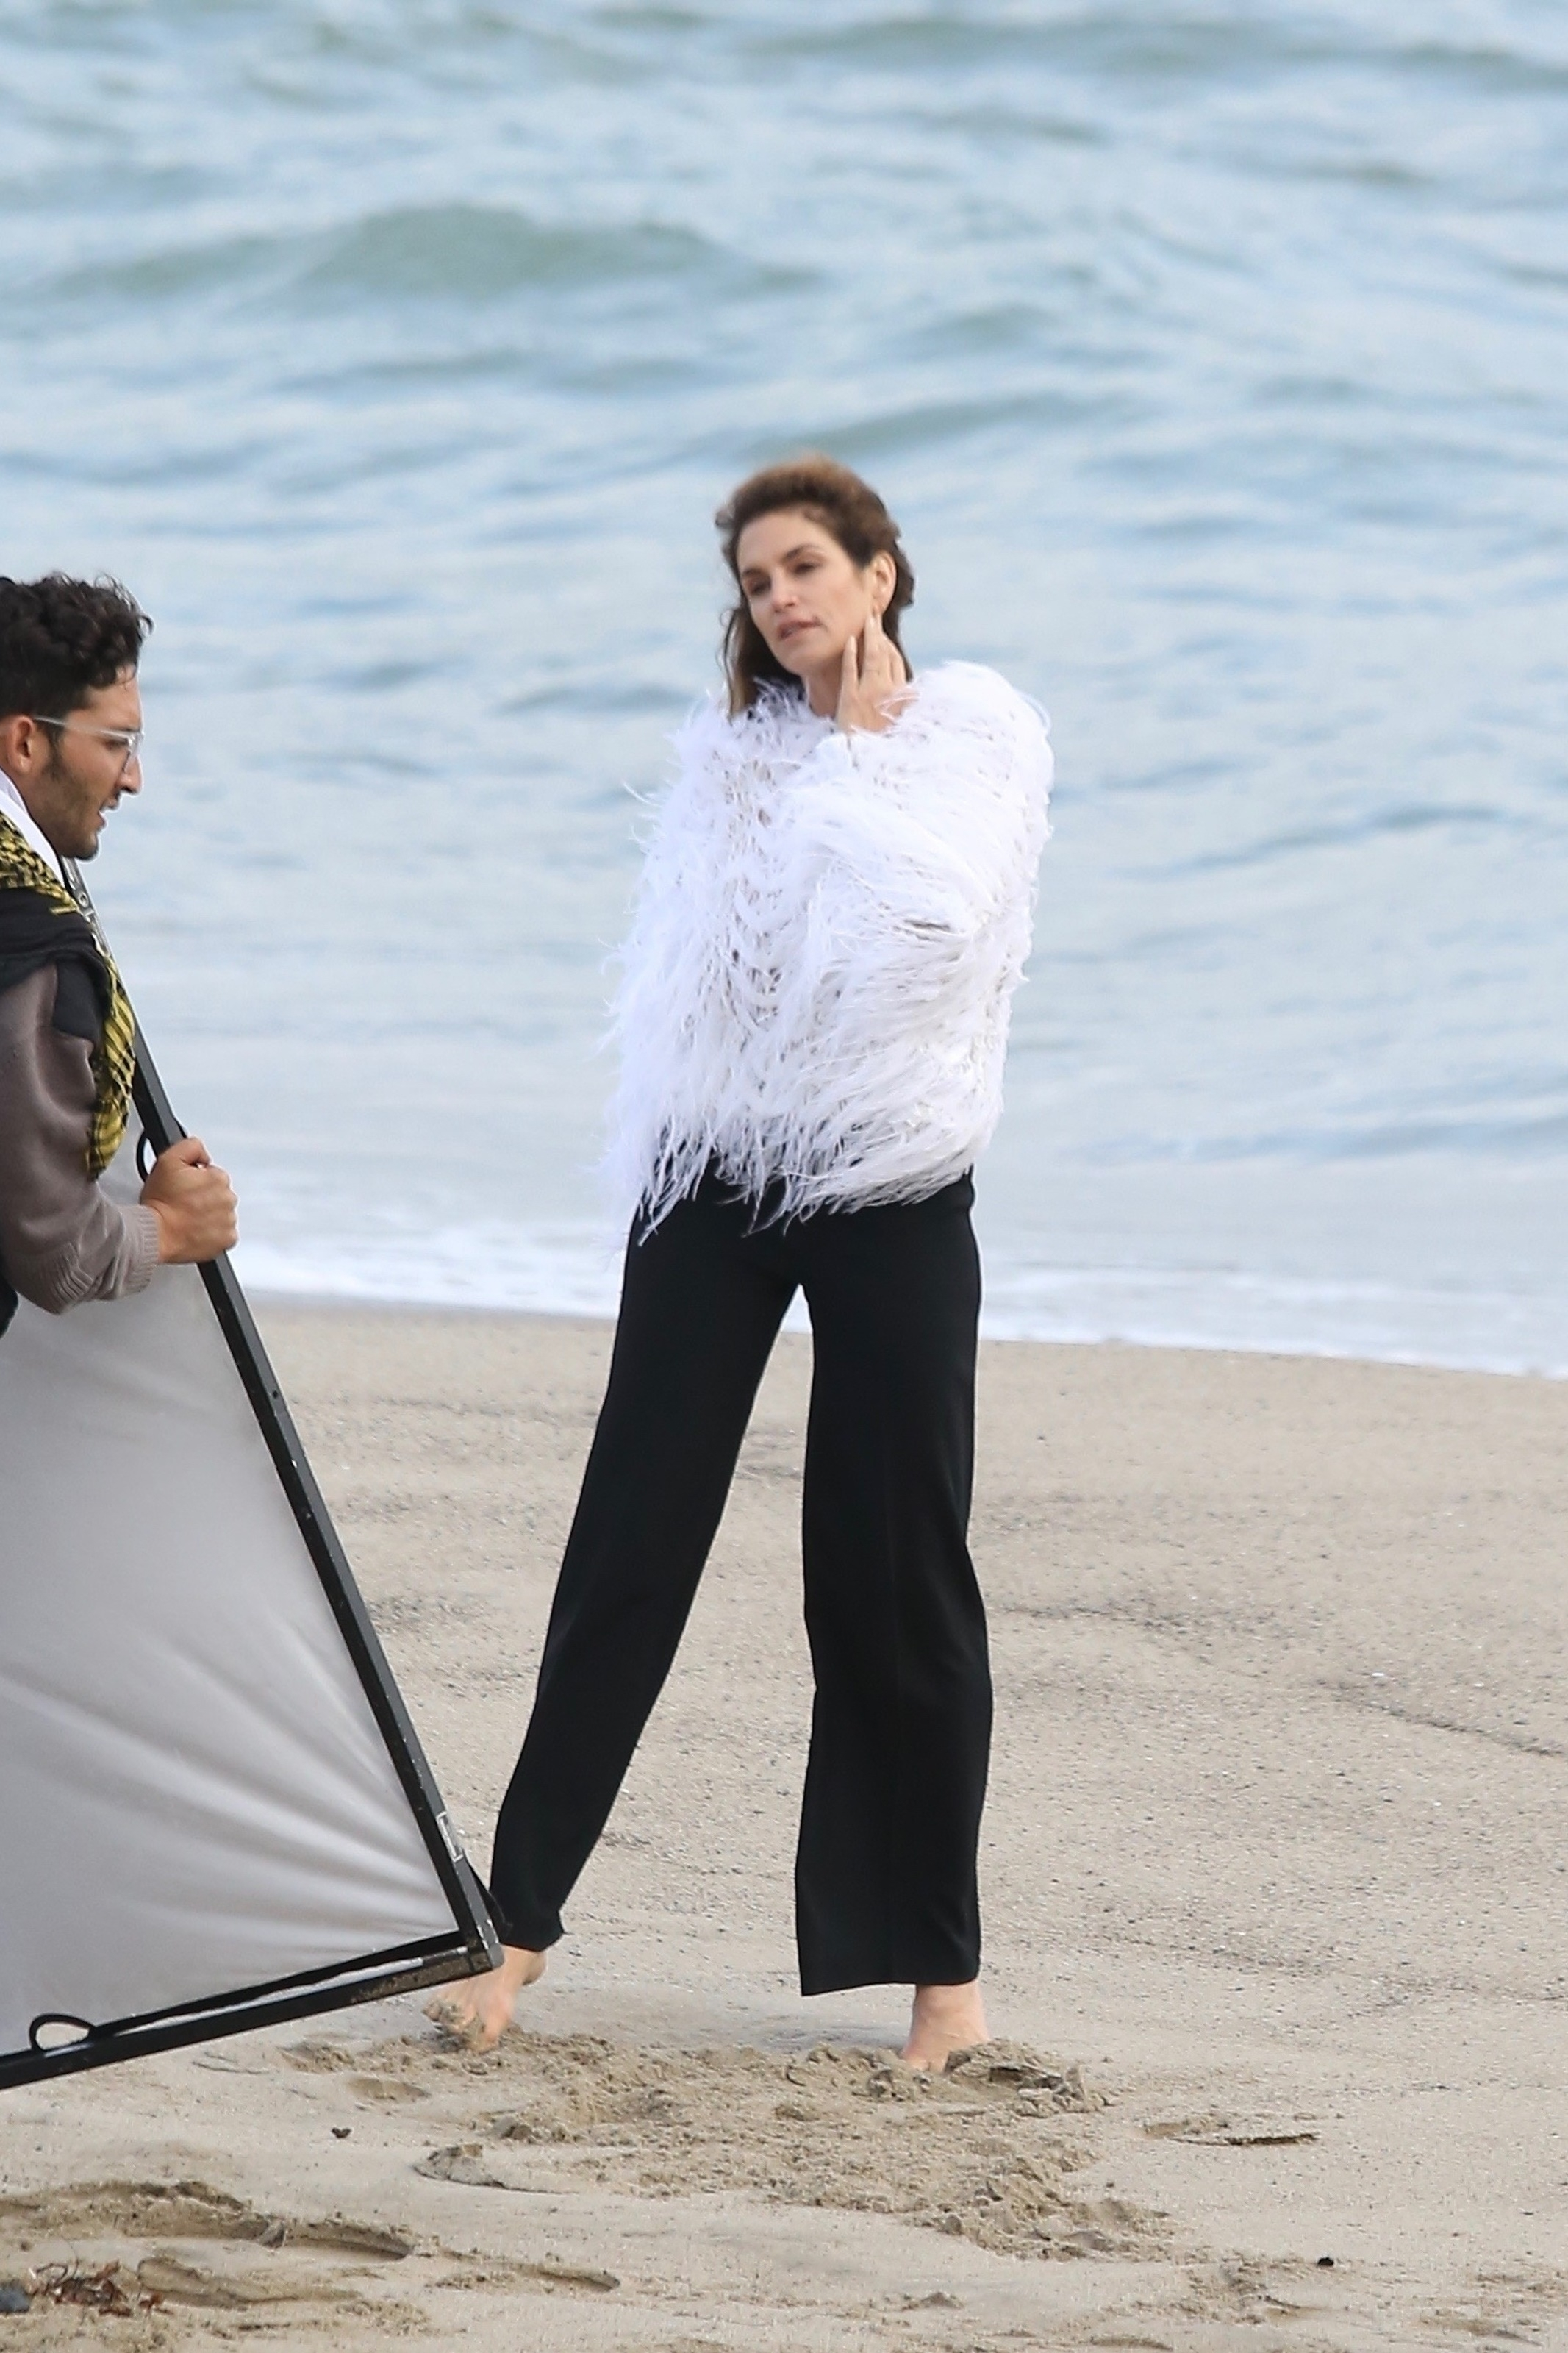 Cindy Crawford has a photoshoot in Malibu on May 24, 2018.